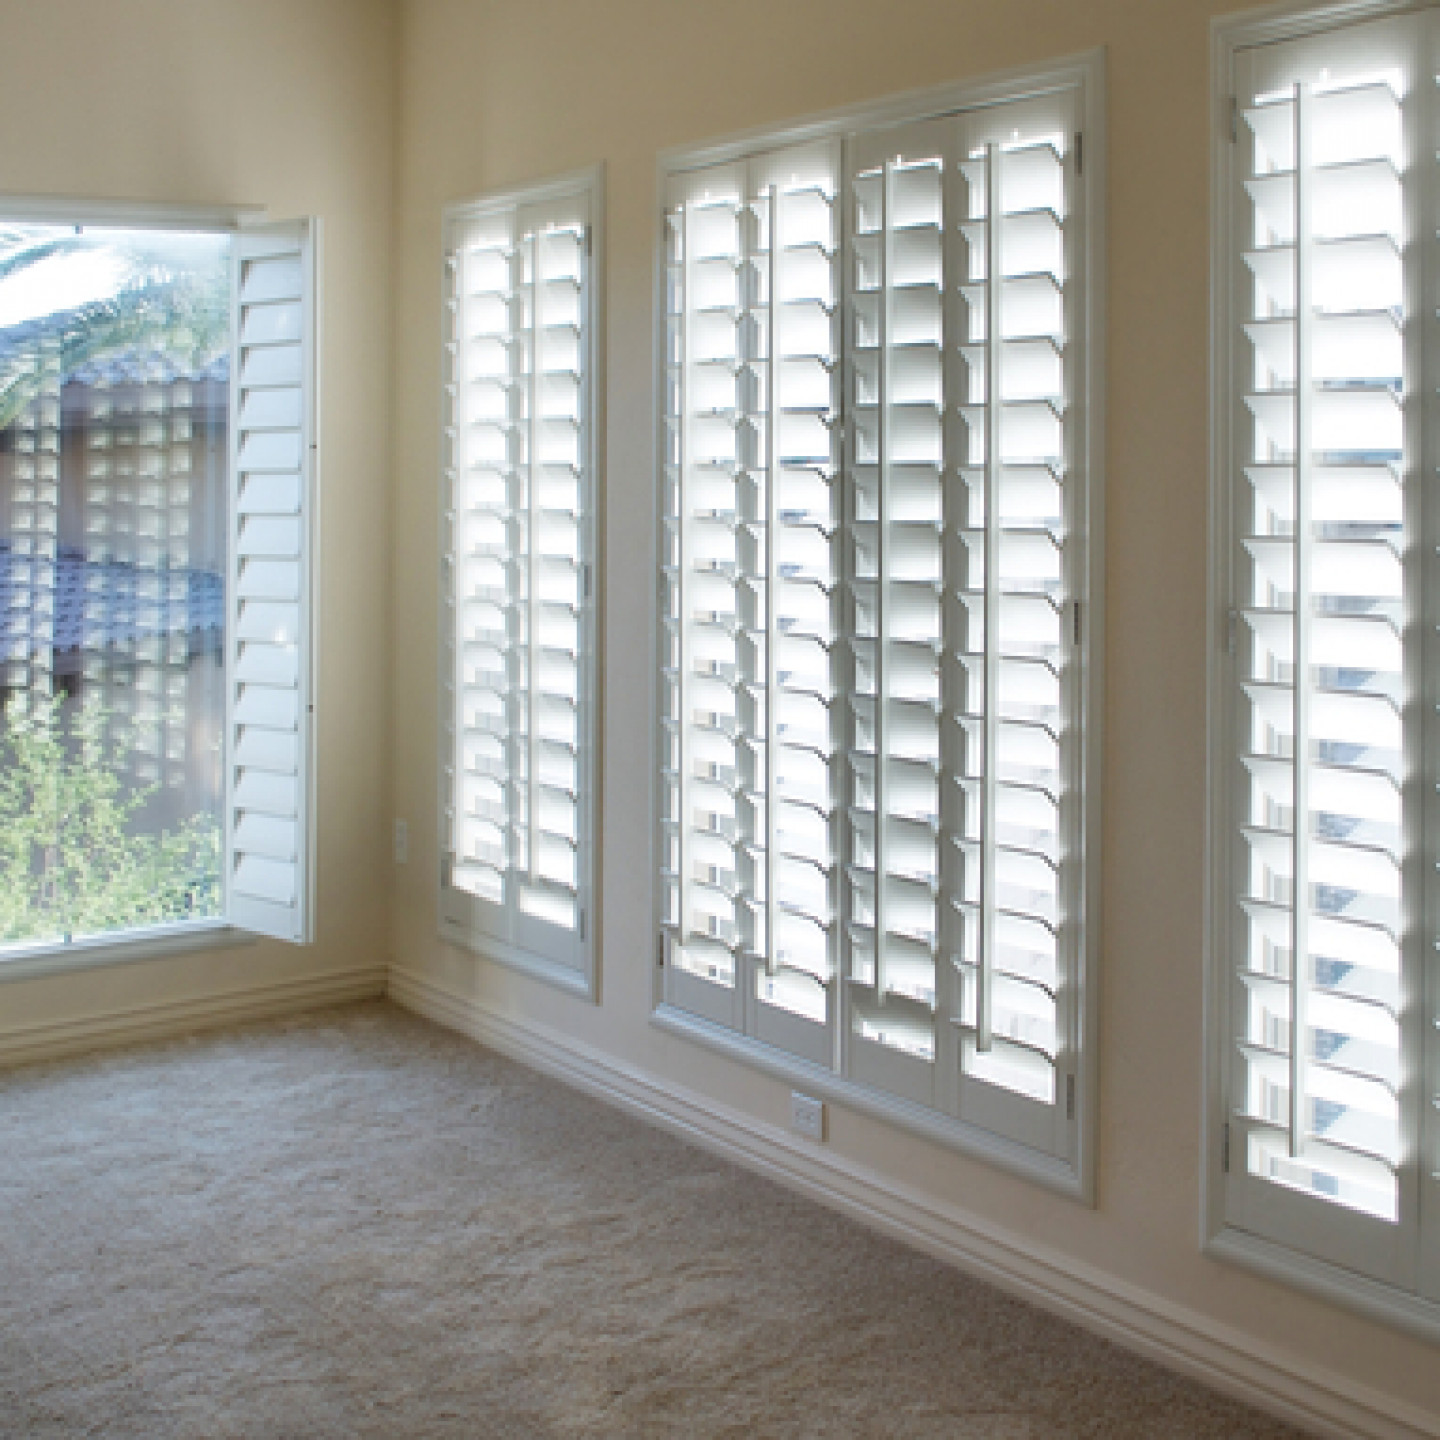 Choose from a wide range of window treatments